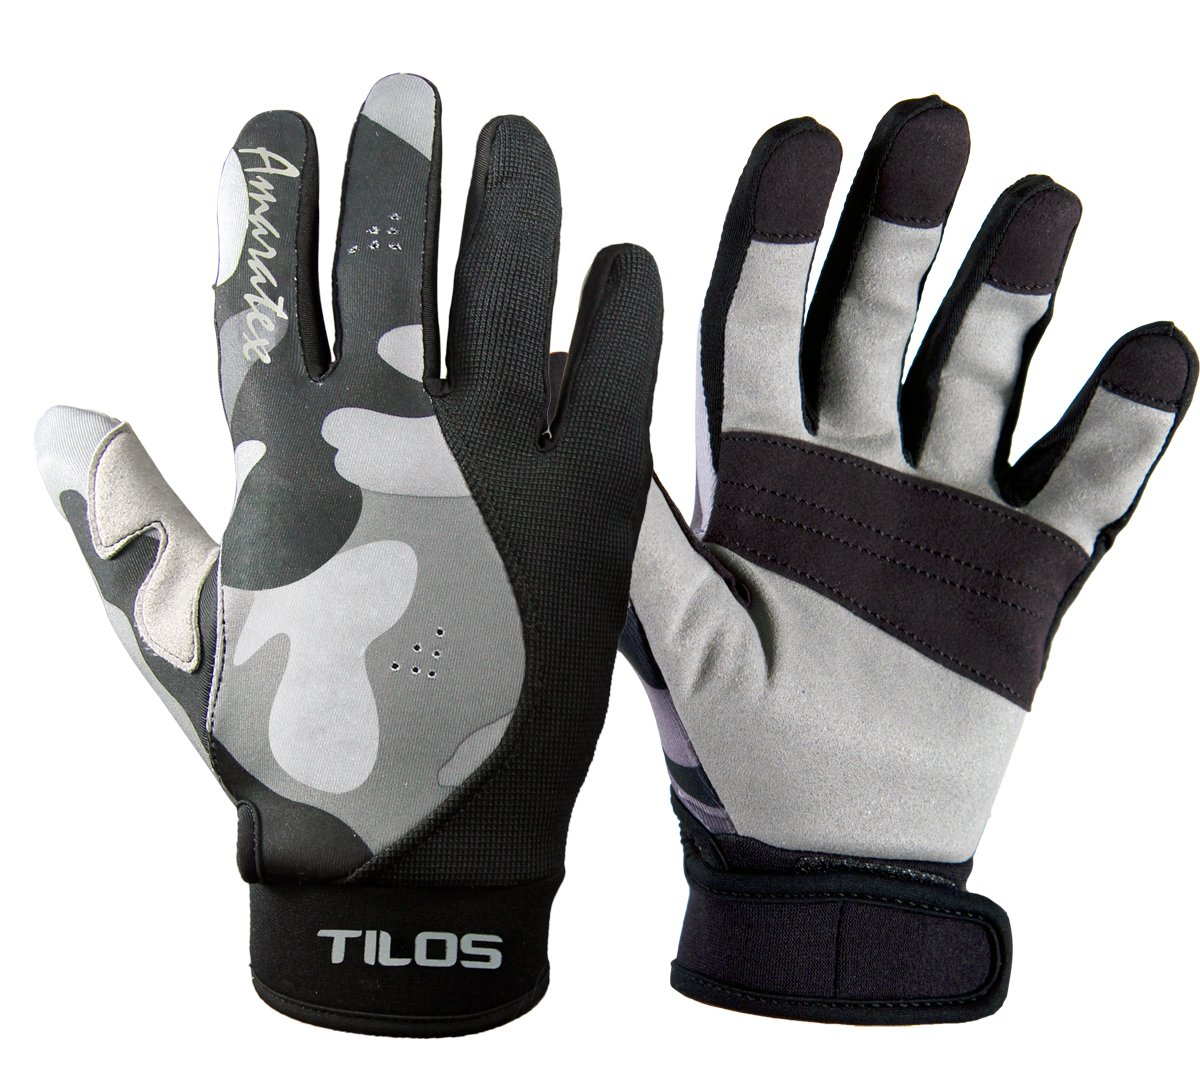 Tilos 1.5mm Tropical Dive Gloves Stretchy Mesh with Amara Leather for Snorkeling, Kayaking, Water Jet Skiing, Sailing, Scuba Diving, Rafting (Gray Camo, XL) by Tilos